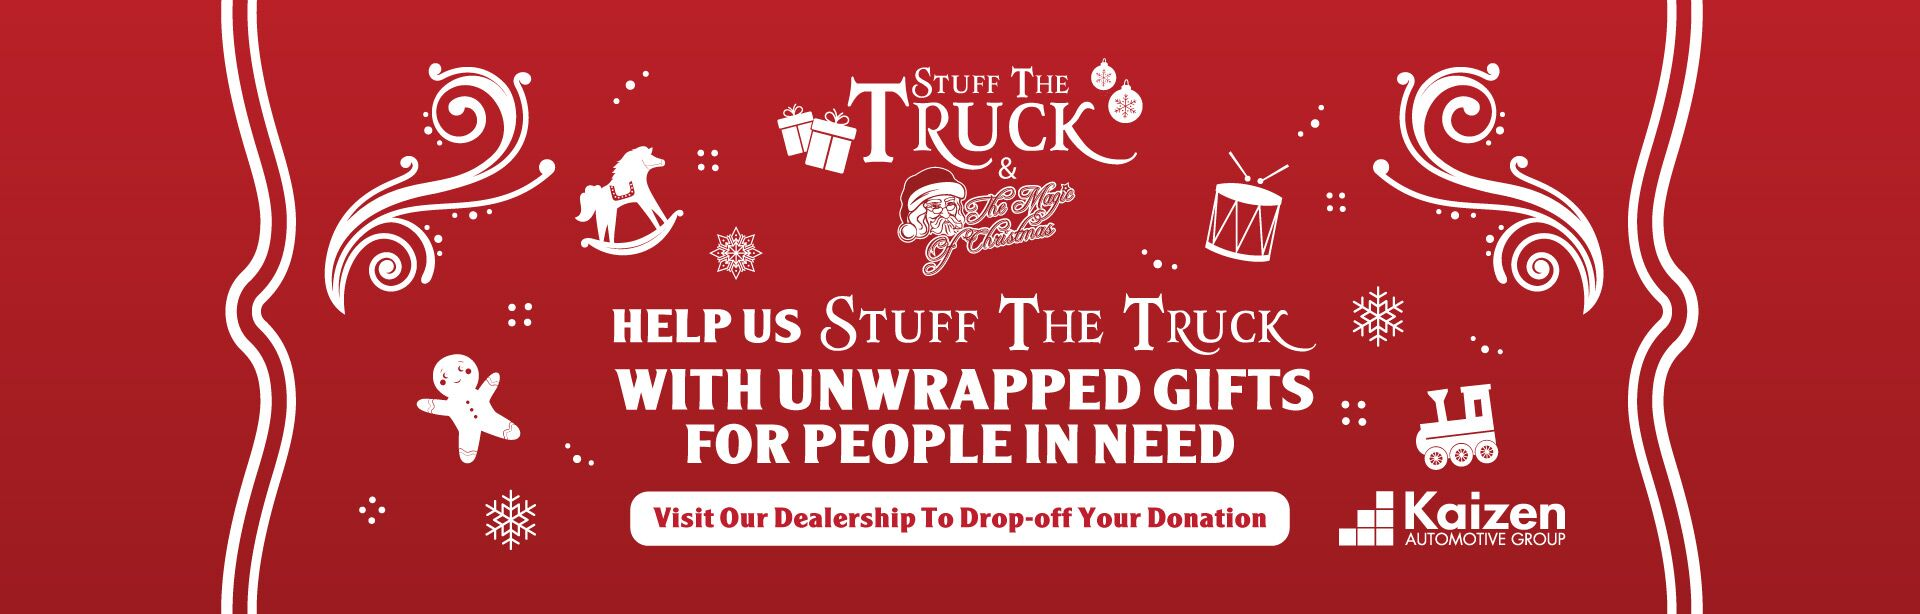 Help Us Stuff the Truck with Magic of Christmas!